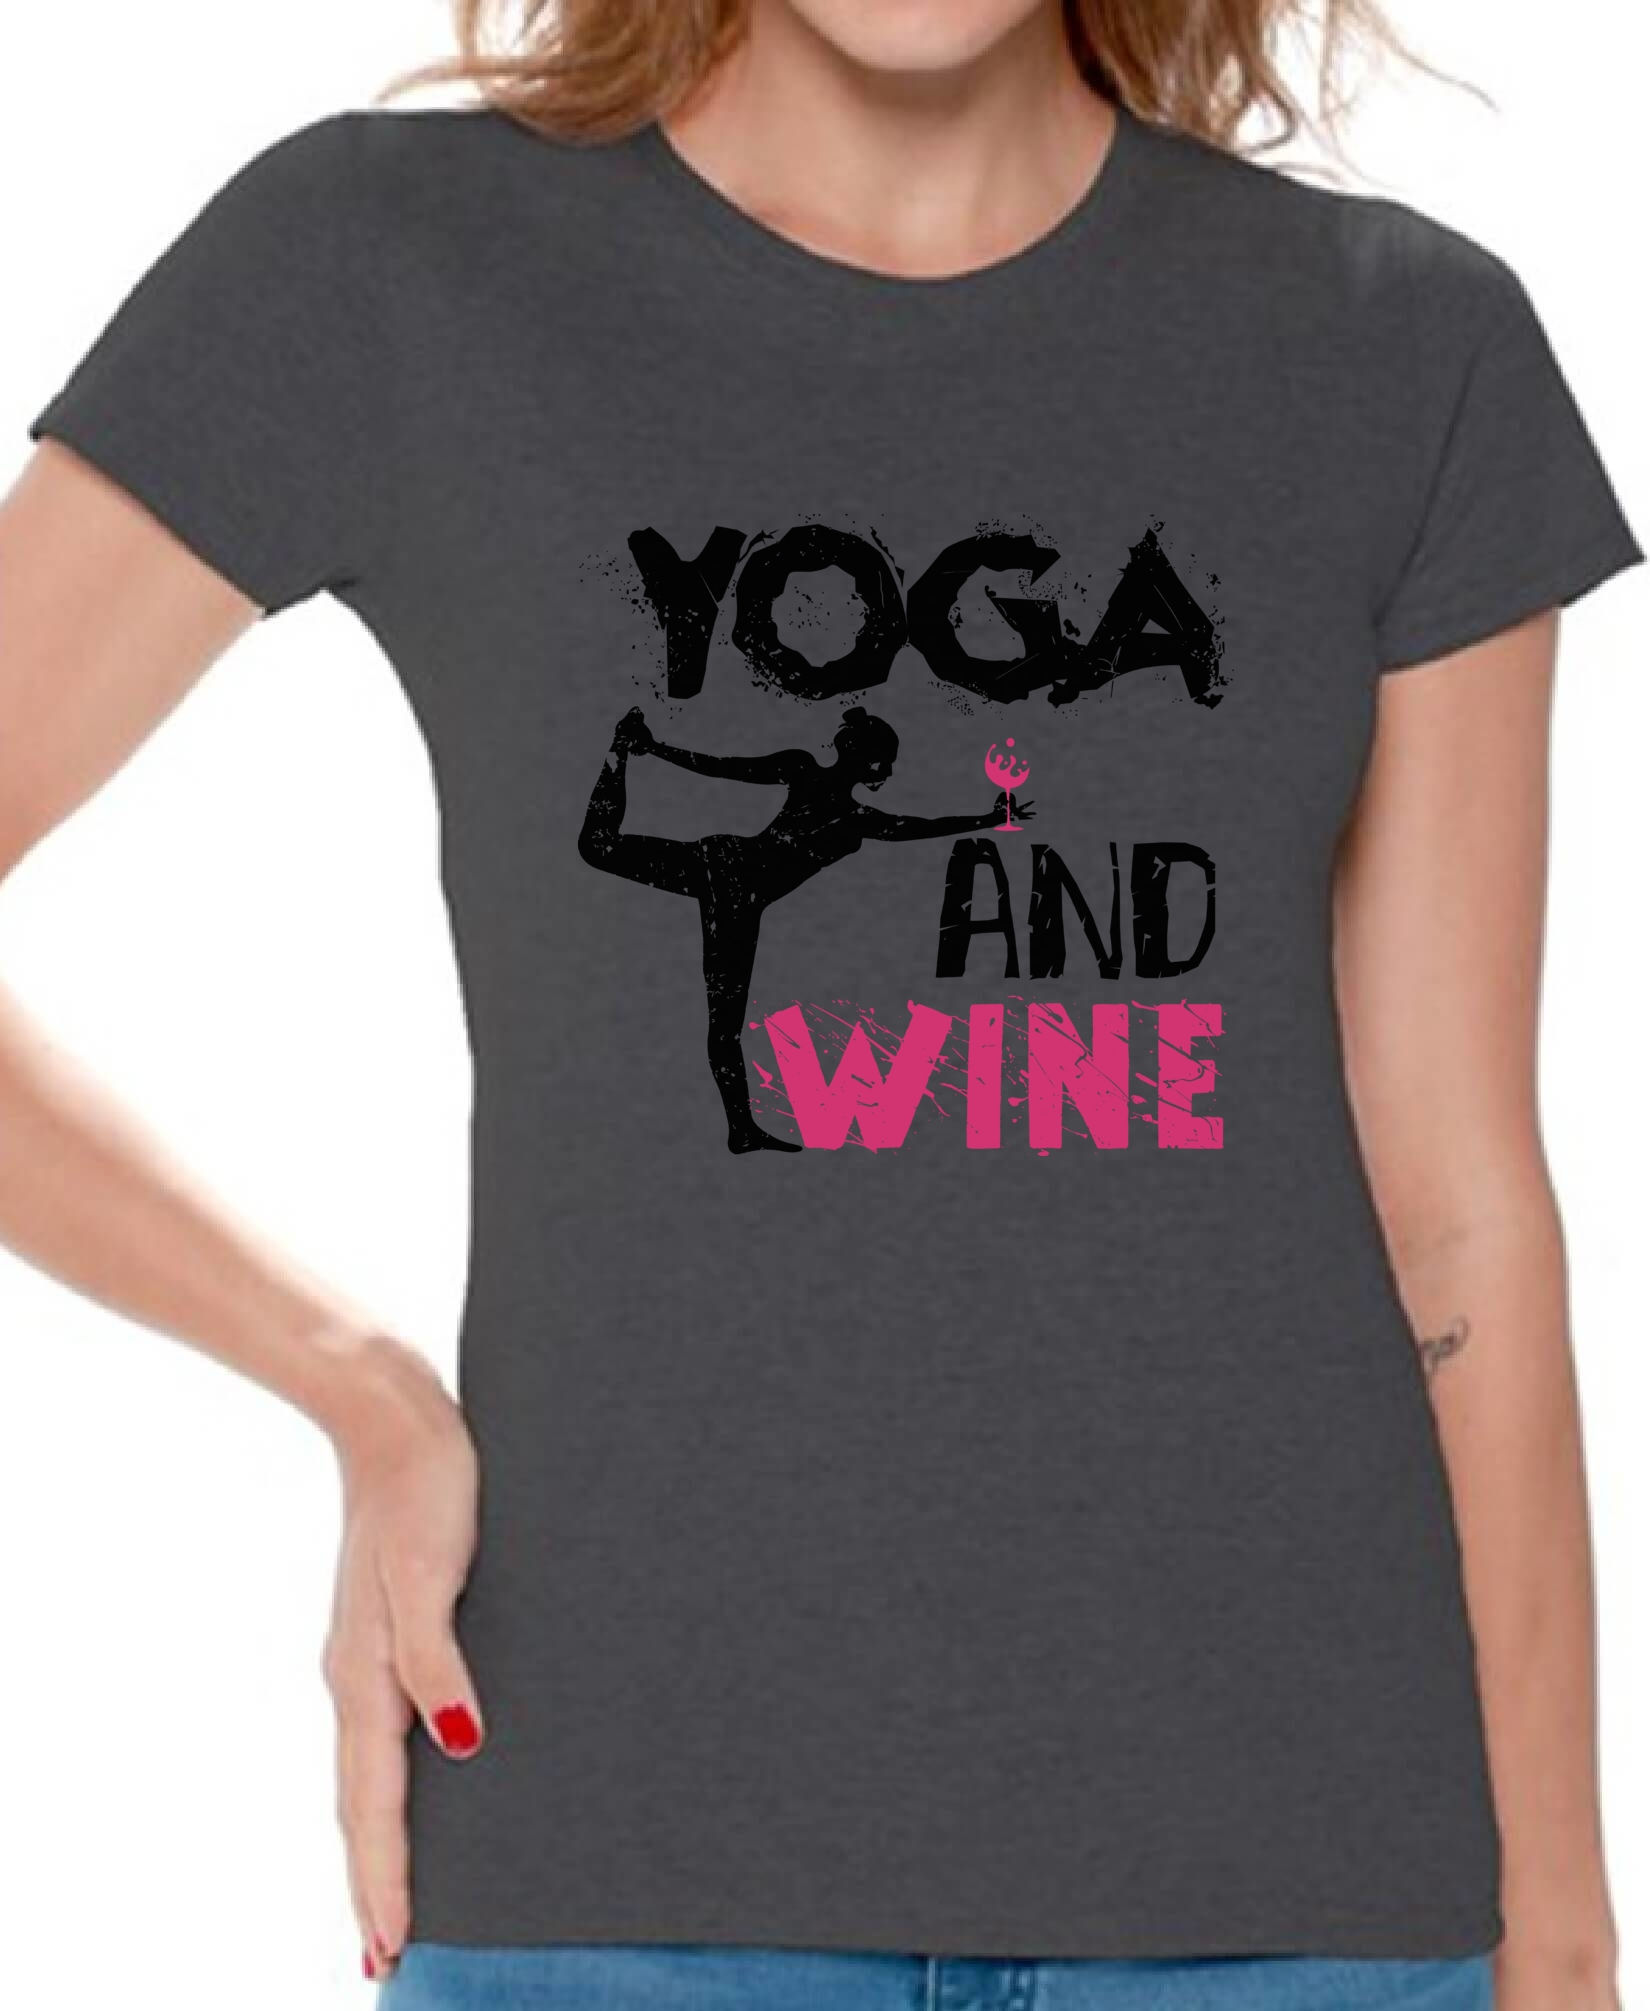 Yoga And Wine Women's T Shirt Tops Workout Gym Yoga